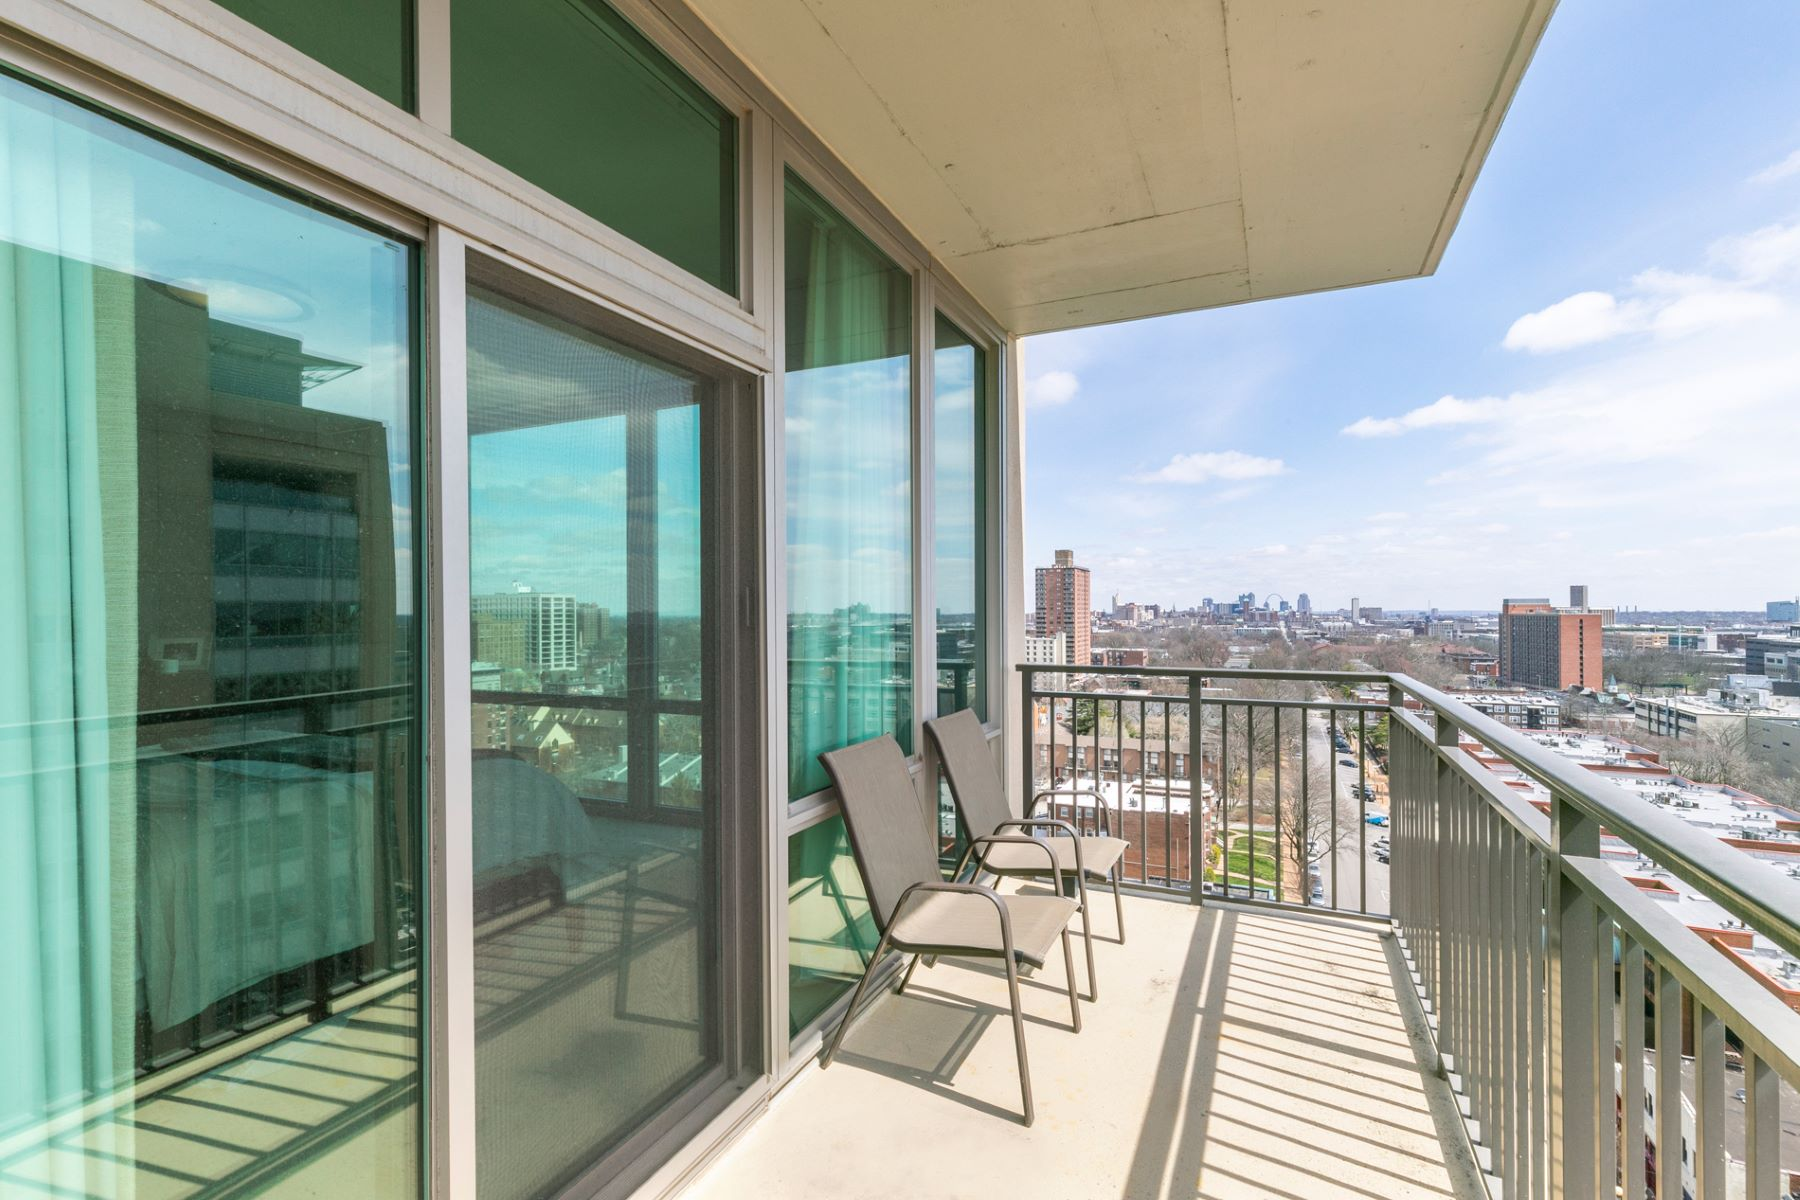 Additional photo for property listing at Laclede Ave 4909 Laclede Ave # 1403 St. Louis, Missouri 63108 United States